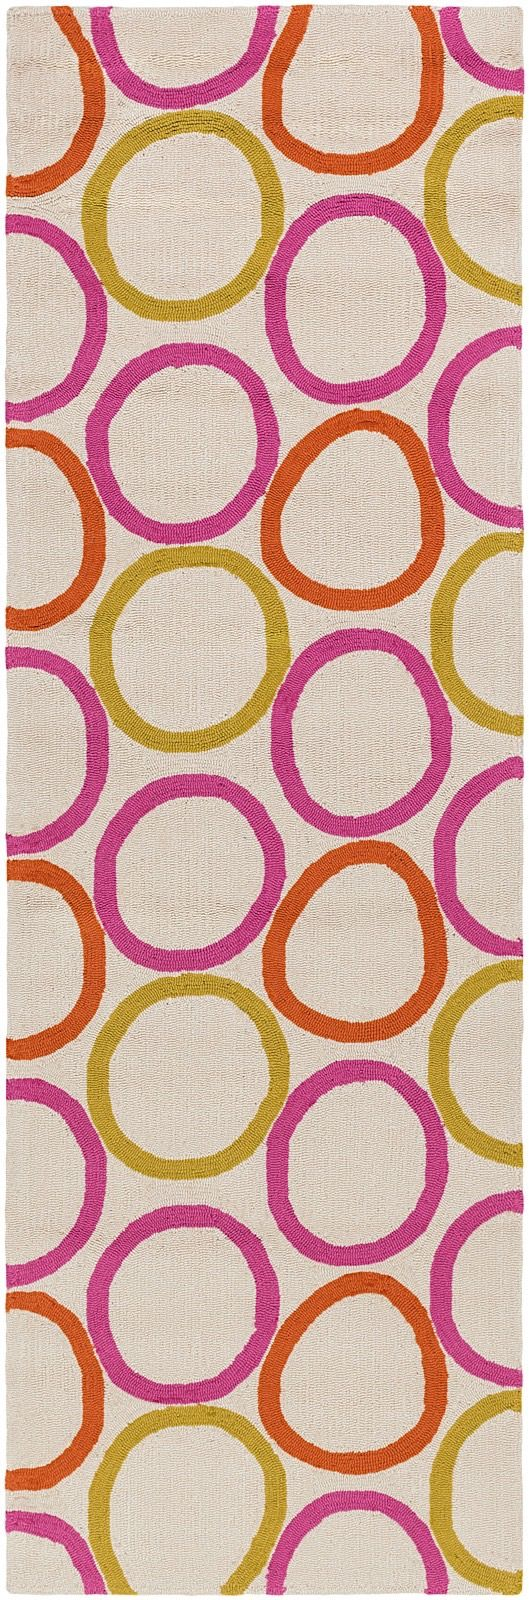 surya miranda contemporary area rug collection